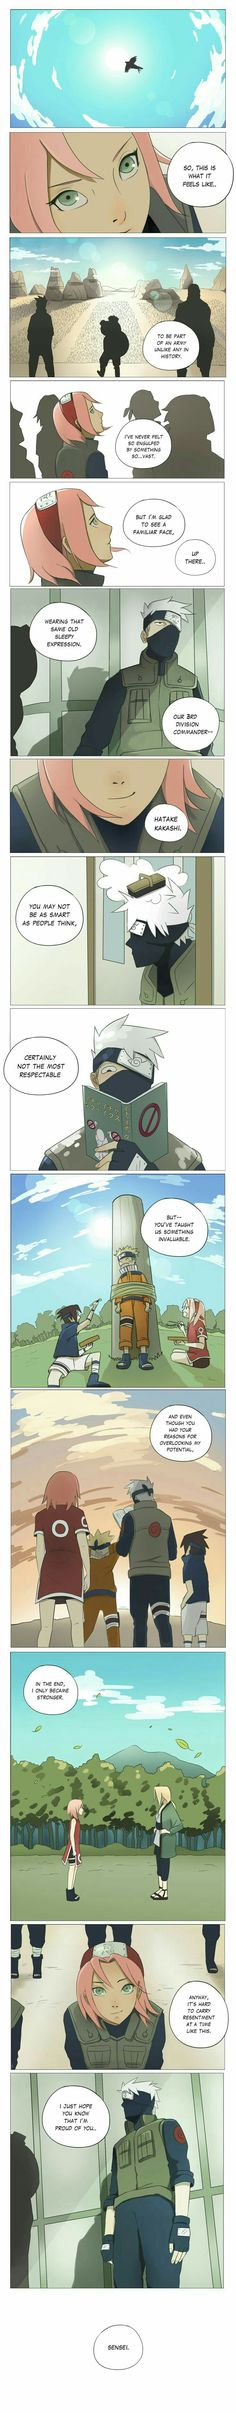 Sakura, Kakashi, text, comic, assembly, Gaara, ninjas, army; Naruto